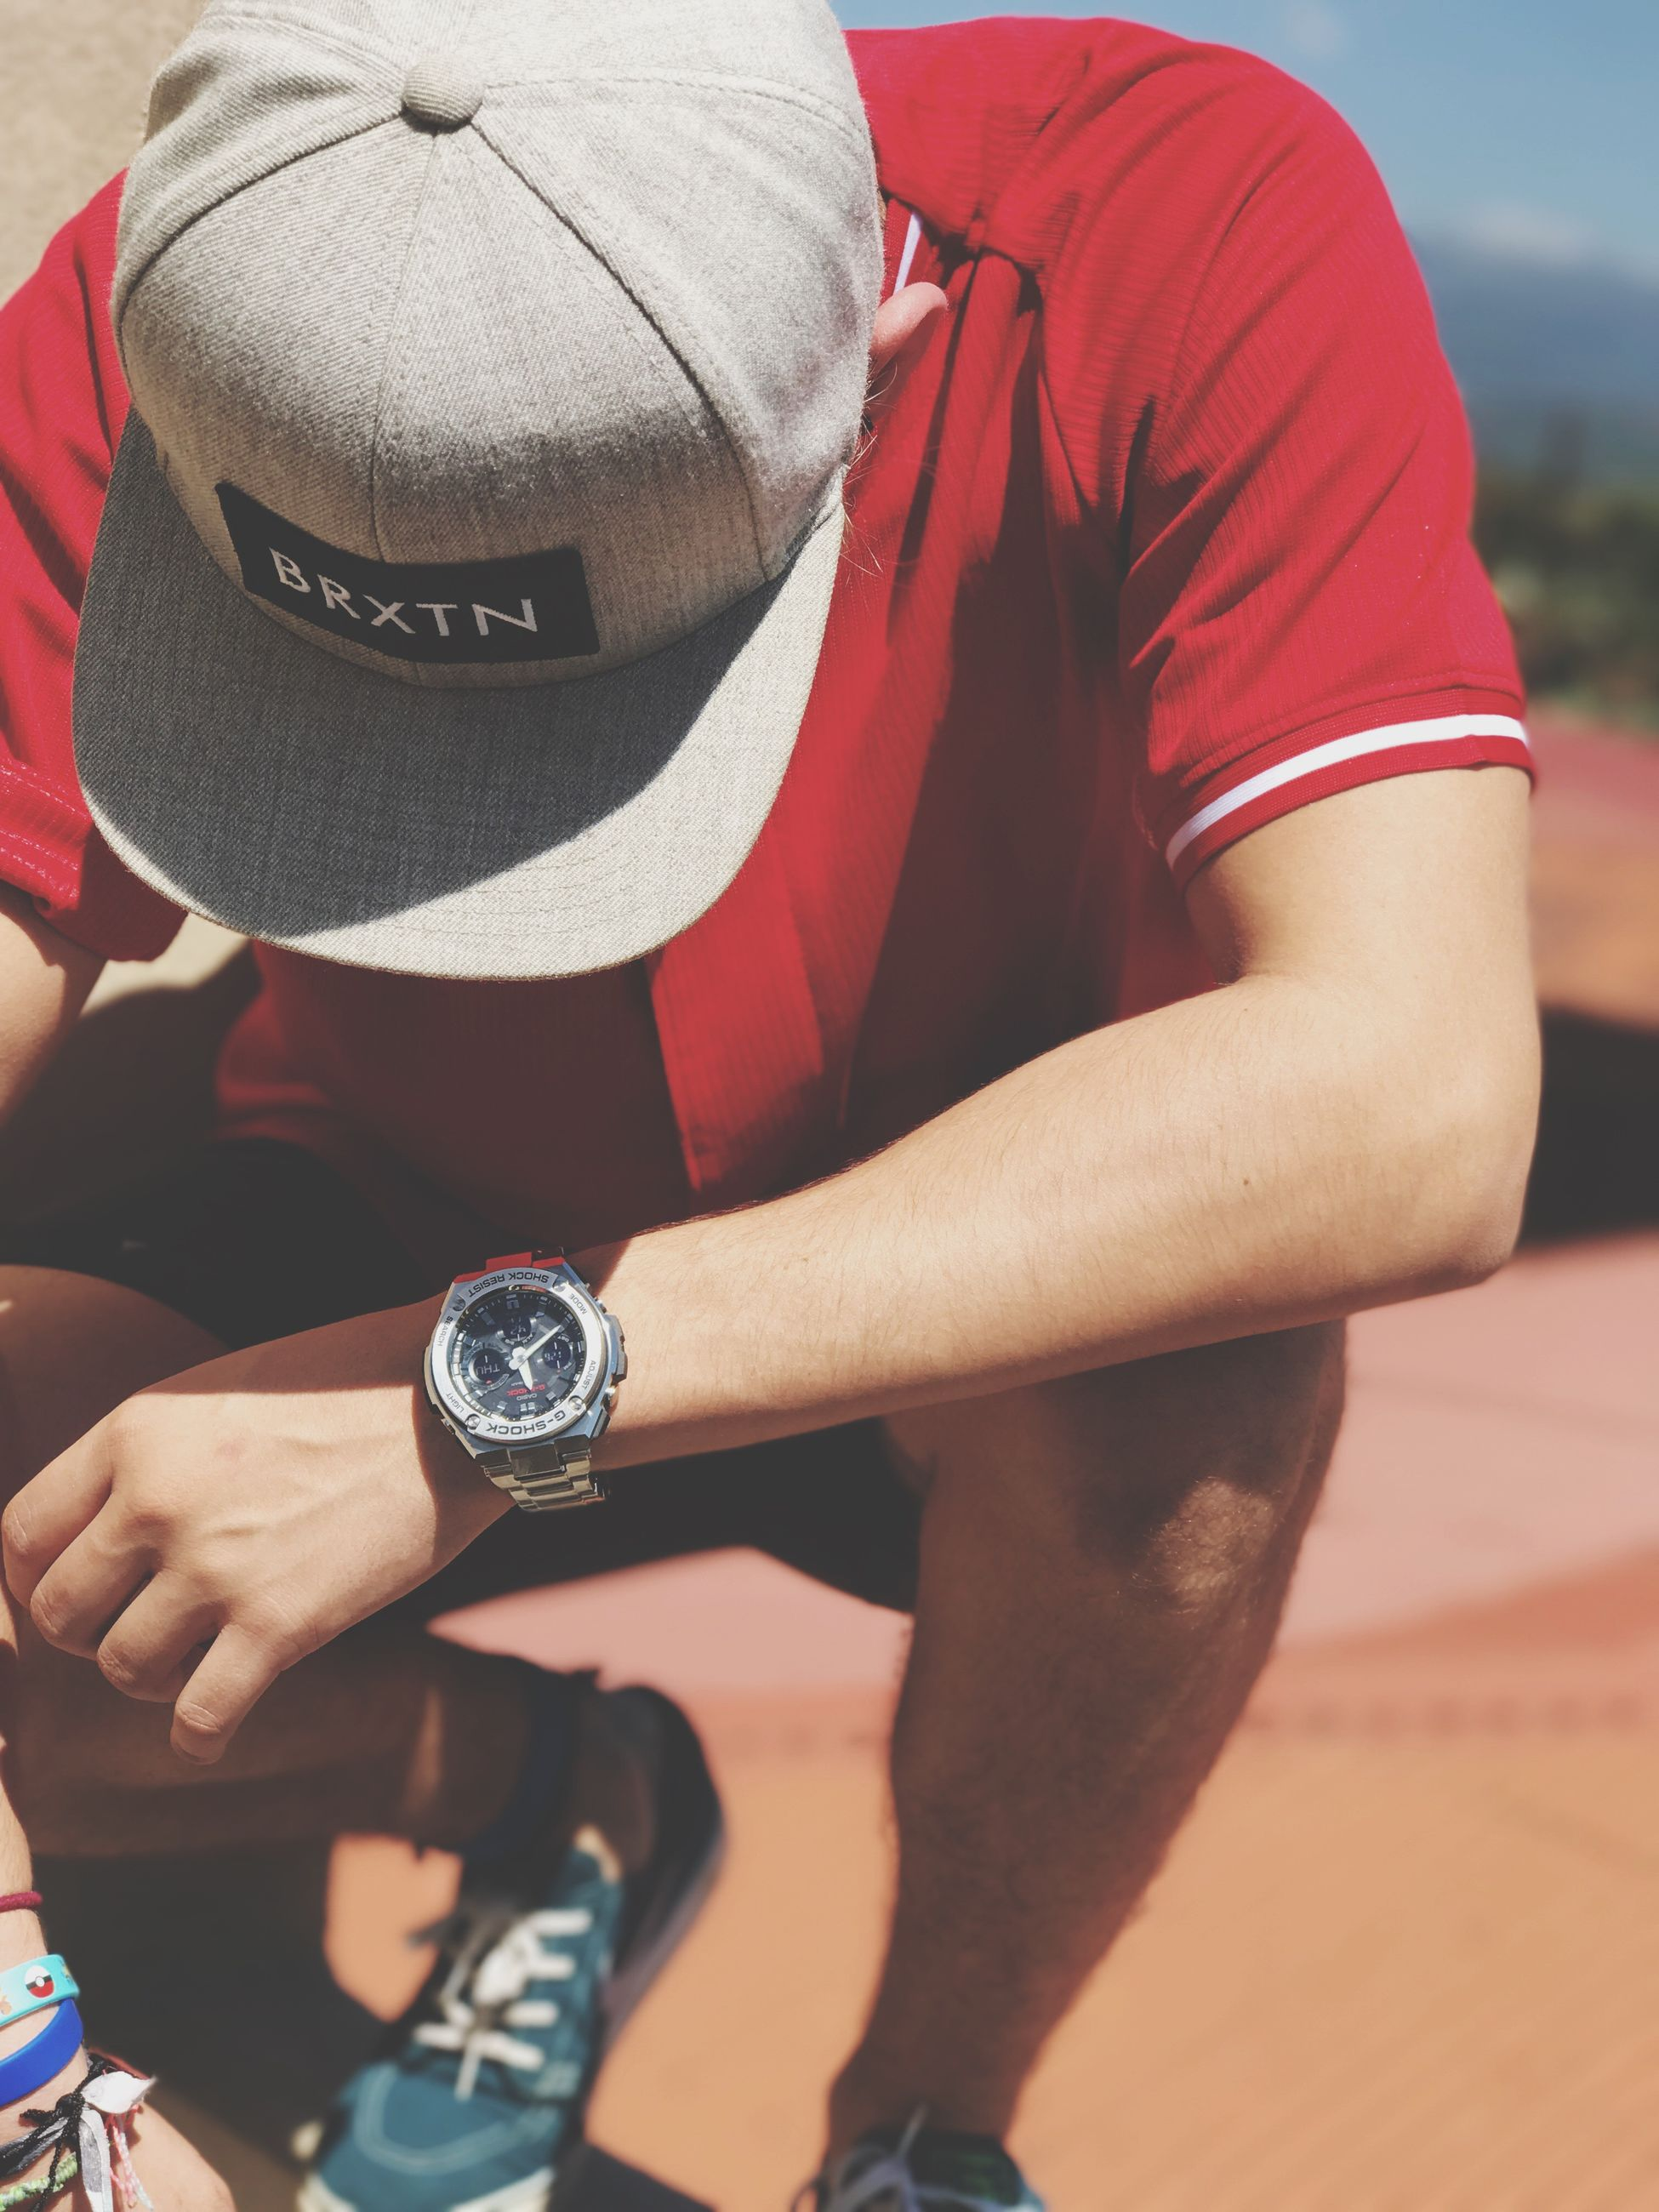 sport, sports clothing, red, real people, sportsman, one person, athlete, sports training, men, competition, outdoors, ball, wristband, only men, day, adults only, track and field, adult, people